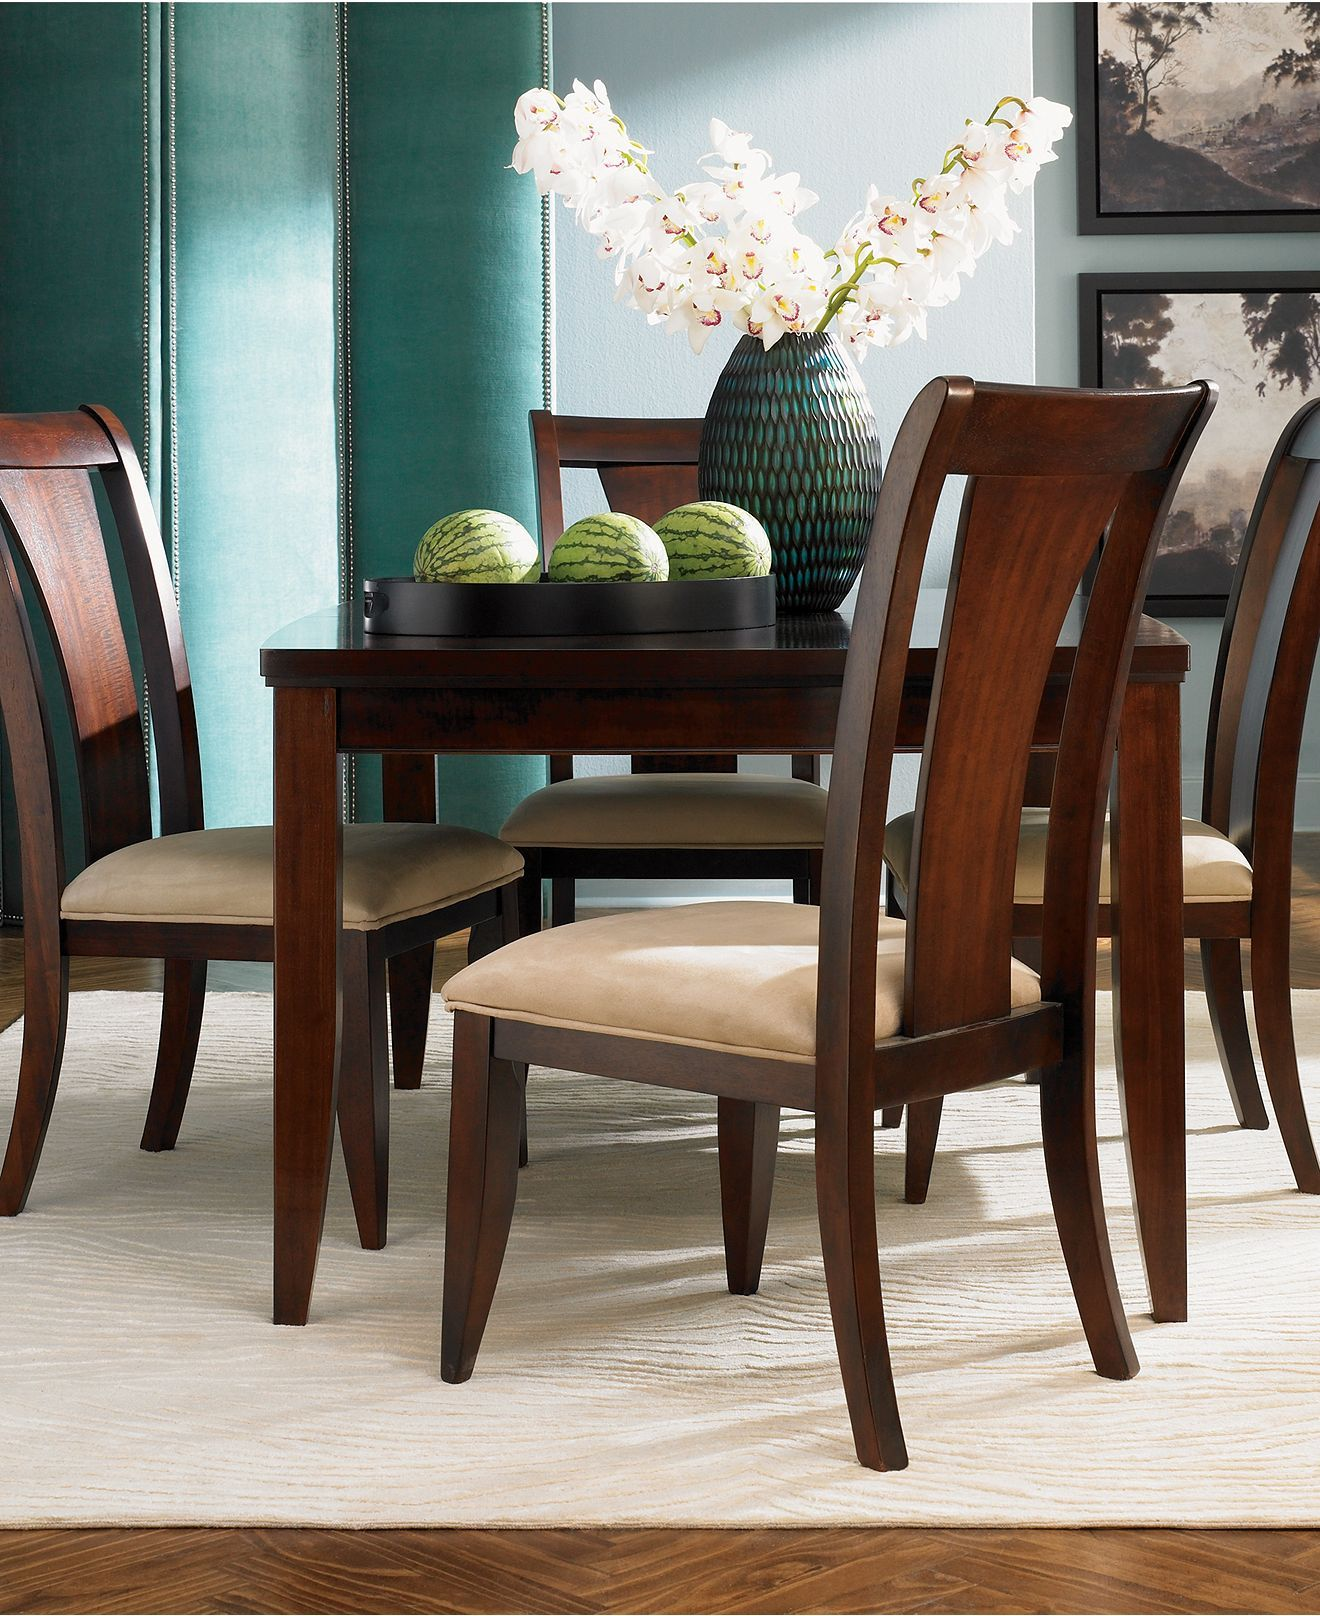 Superieur Metropolitan Dining Room Sets   Furniture   Macyu0027s $1189 7 Piece Set. Table  40x66 (96 With Leaves)